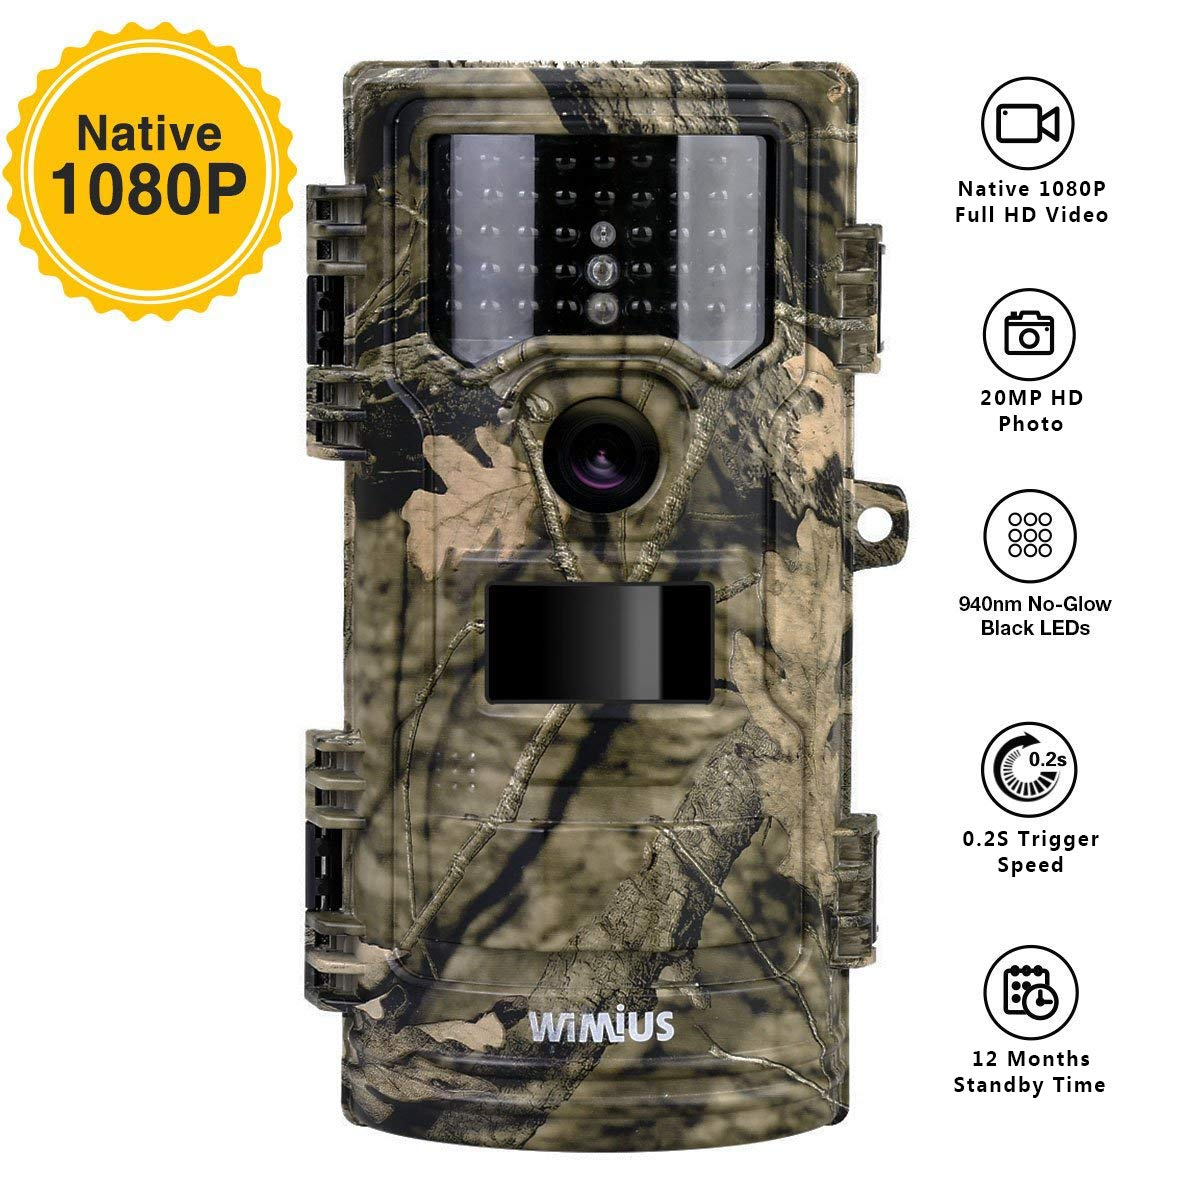 2fb0e98bb7a9d WiMiUS Wildlife Trail Camera, 1080P 20MP 0.2s Trigger Speed Motion  Activated Infrared Night Vision 70ft / 20m IP54 Waterproof with 2.4